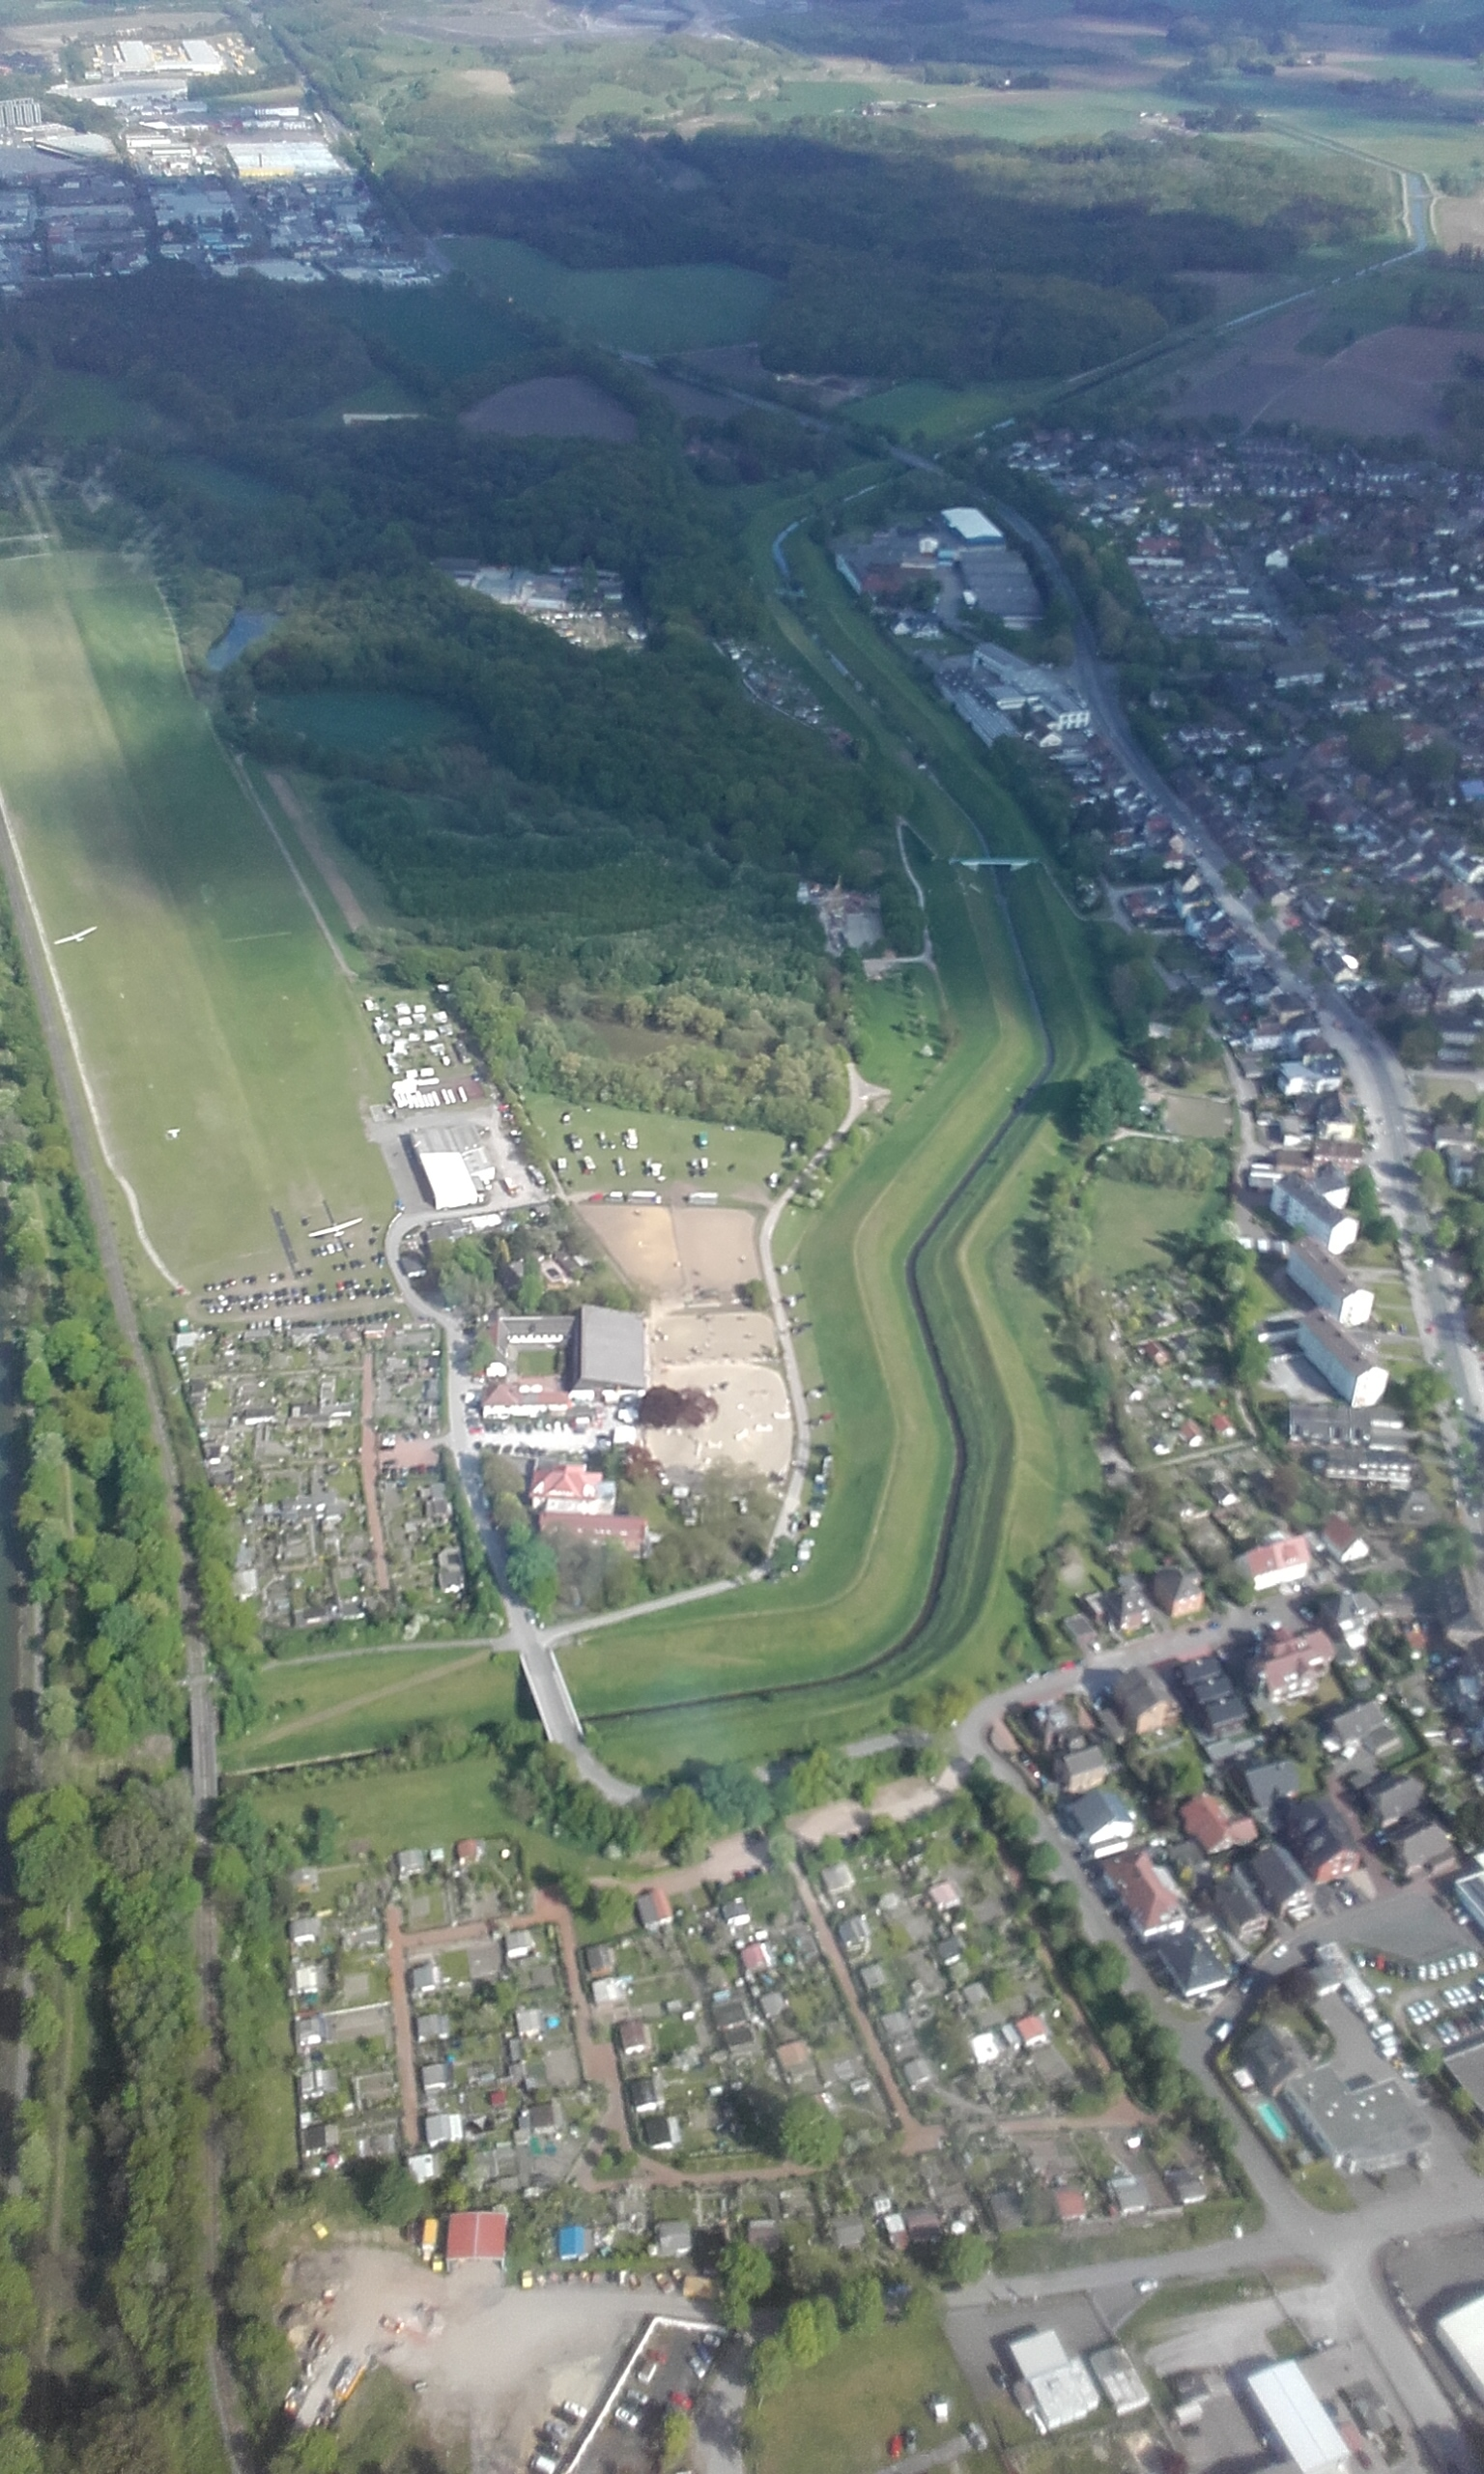 Here is a birds eye view of the horse show grounds.